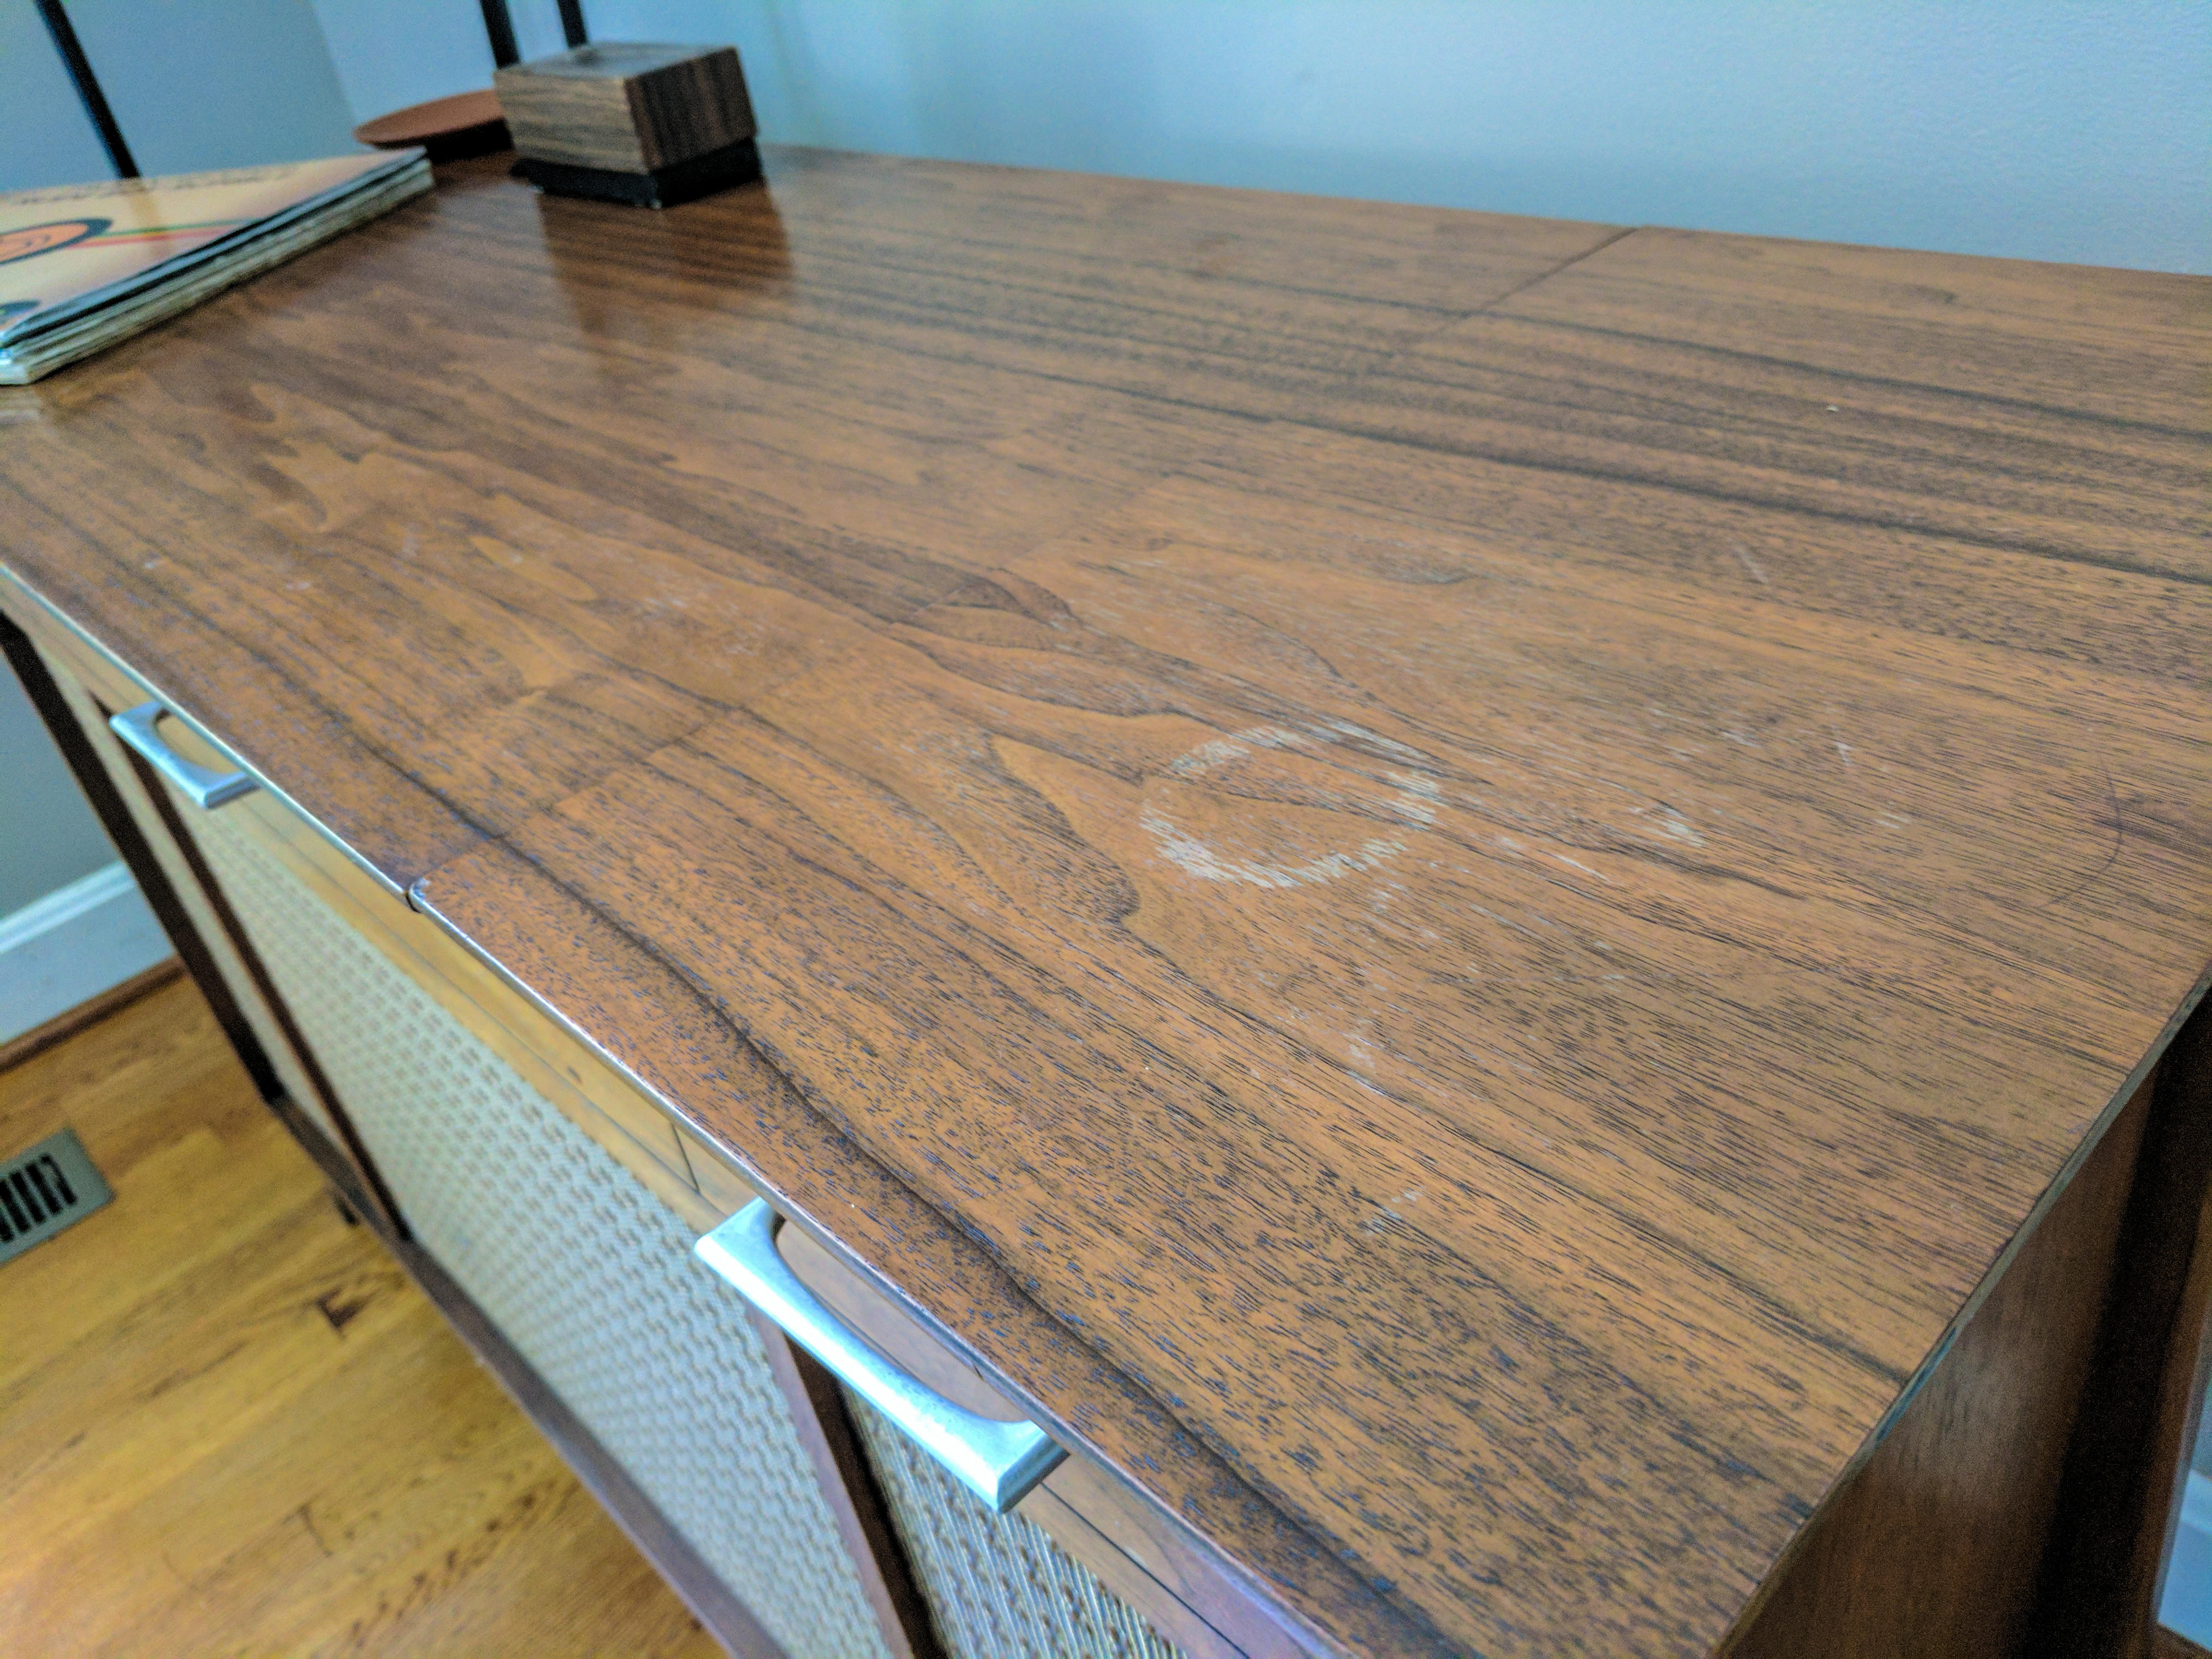 How To Remove Water Stains From Wood Furniture Cnet - How To Remove Water Marks Off Wooden Table